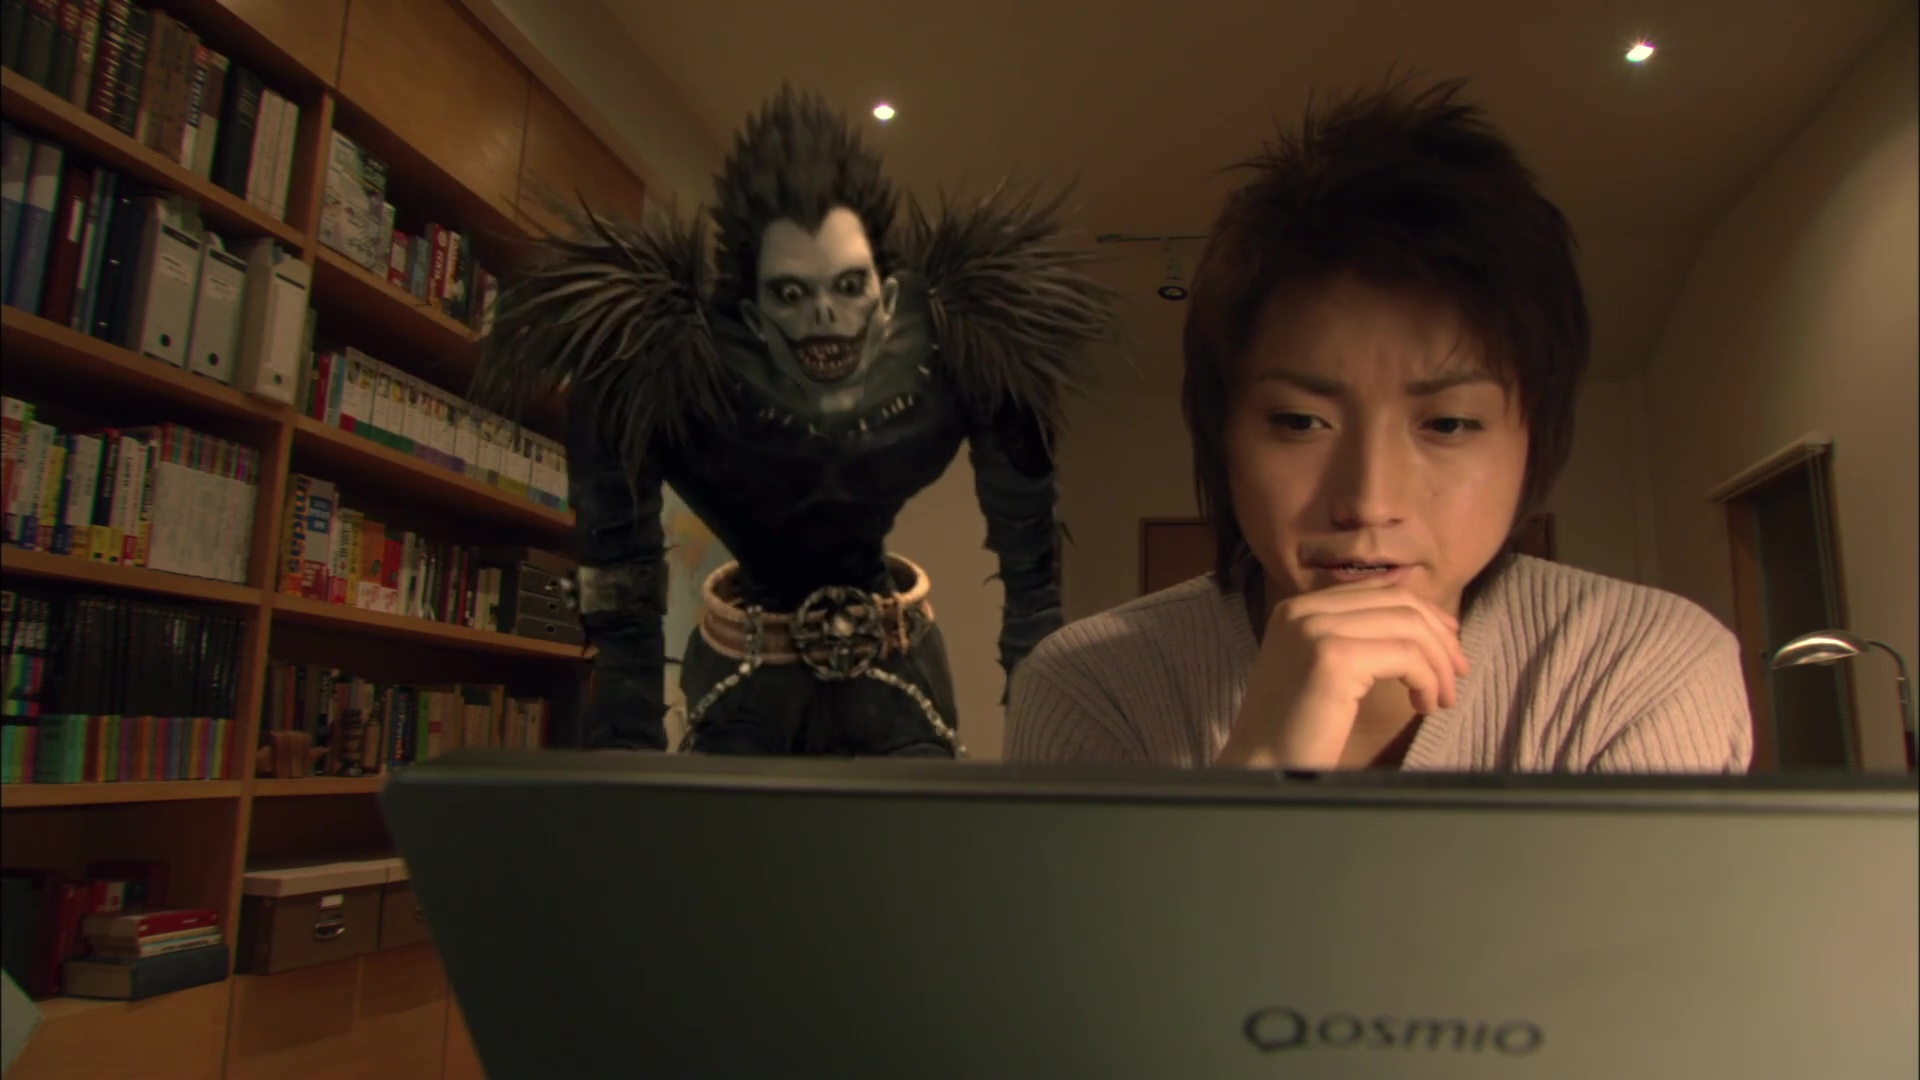 File:Death Note film- Ryuk and Light.jpg